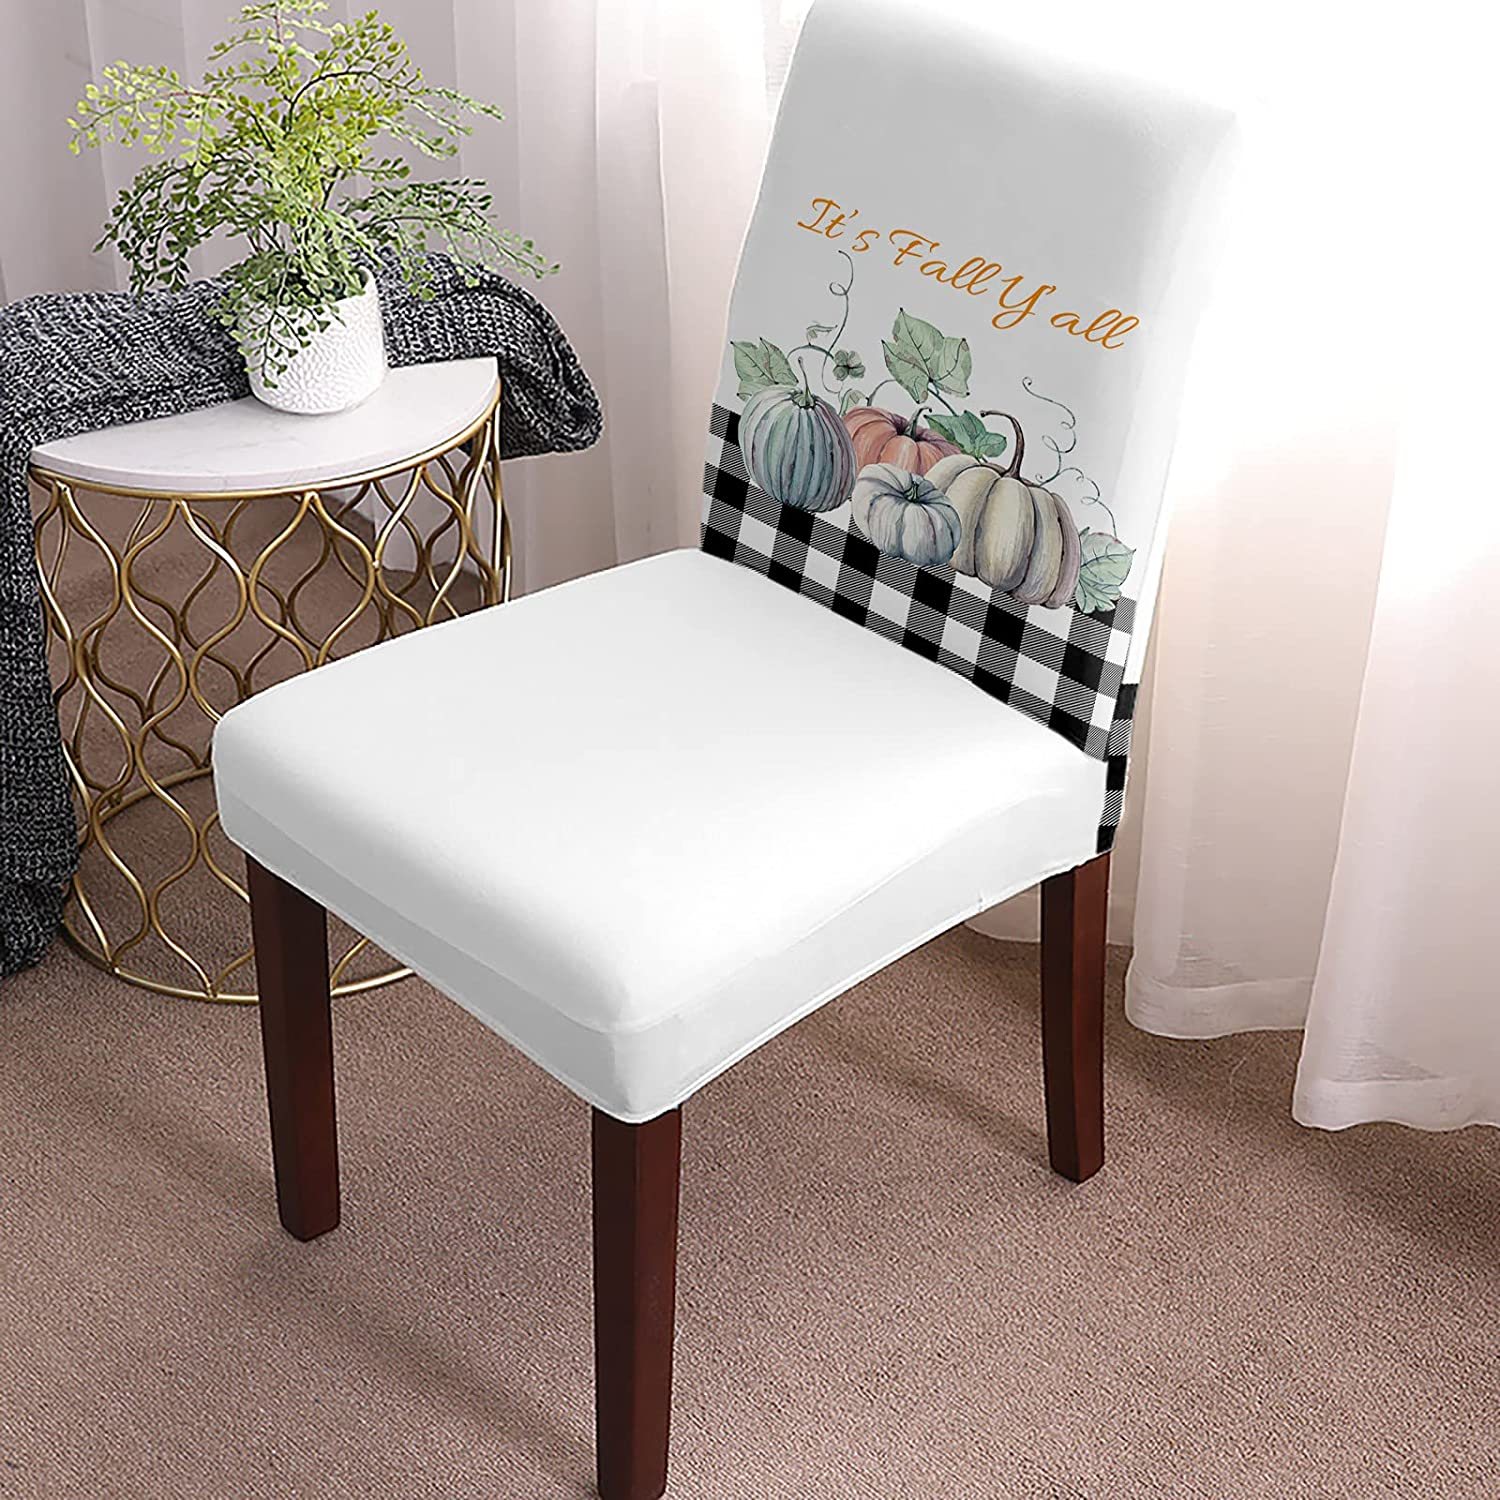 Dining Chair Covers Stretch Slipcovers Translated Autumn Thanks Protectors Max 87% OFF